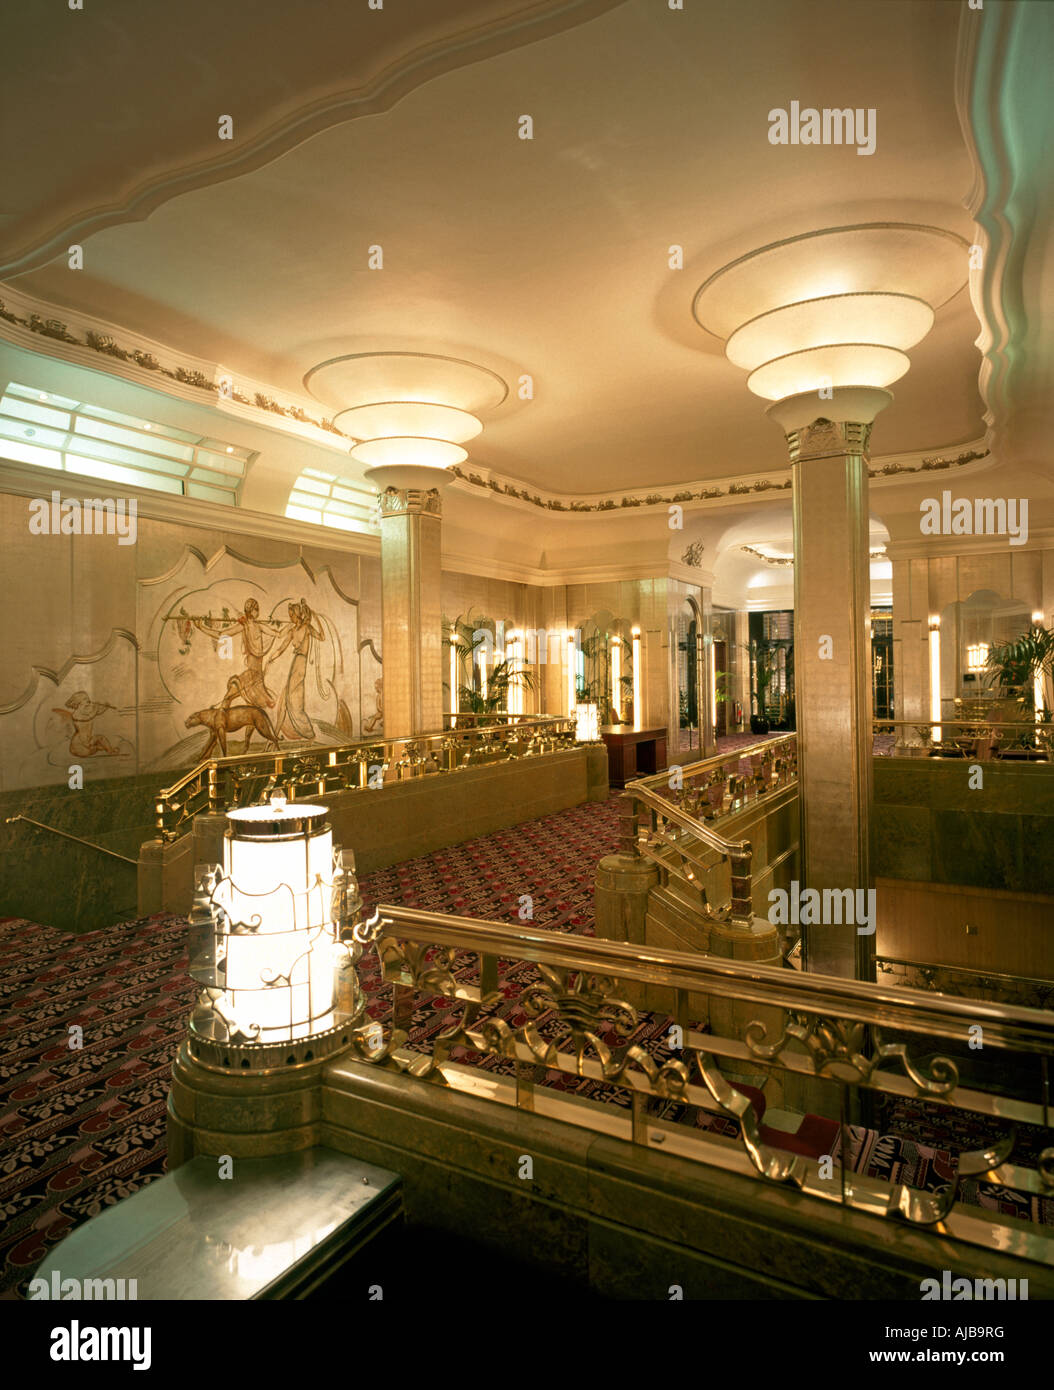 foyer interior in art deco style of hyde park hotel london w1